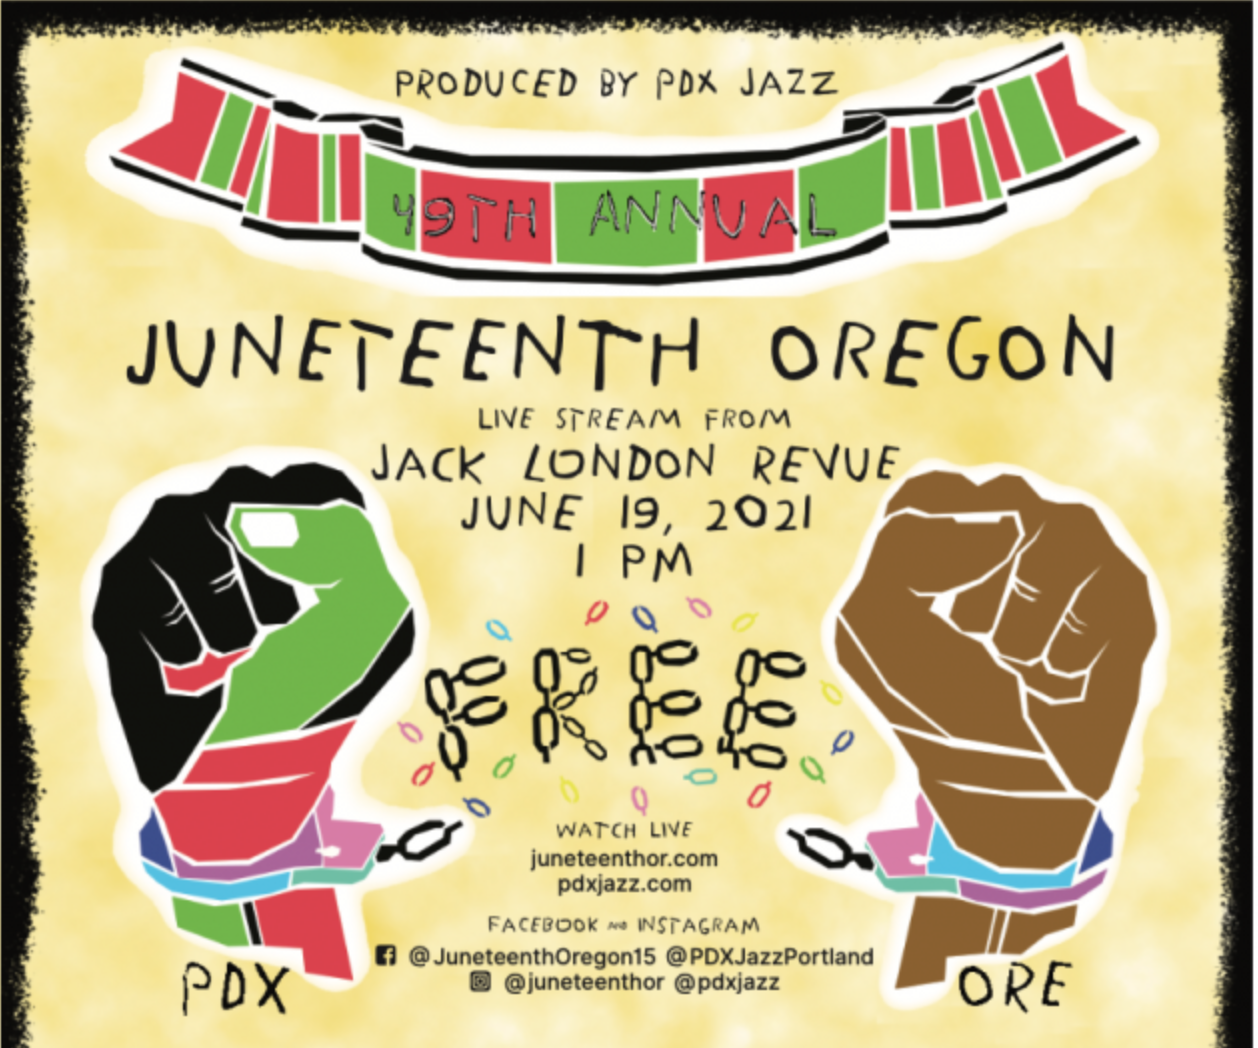 Poster for Juneteenth PDX 2021